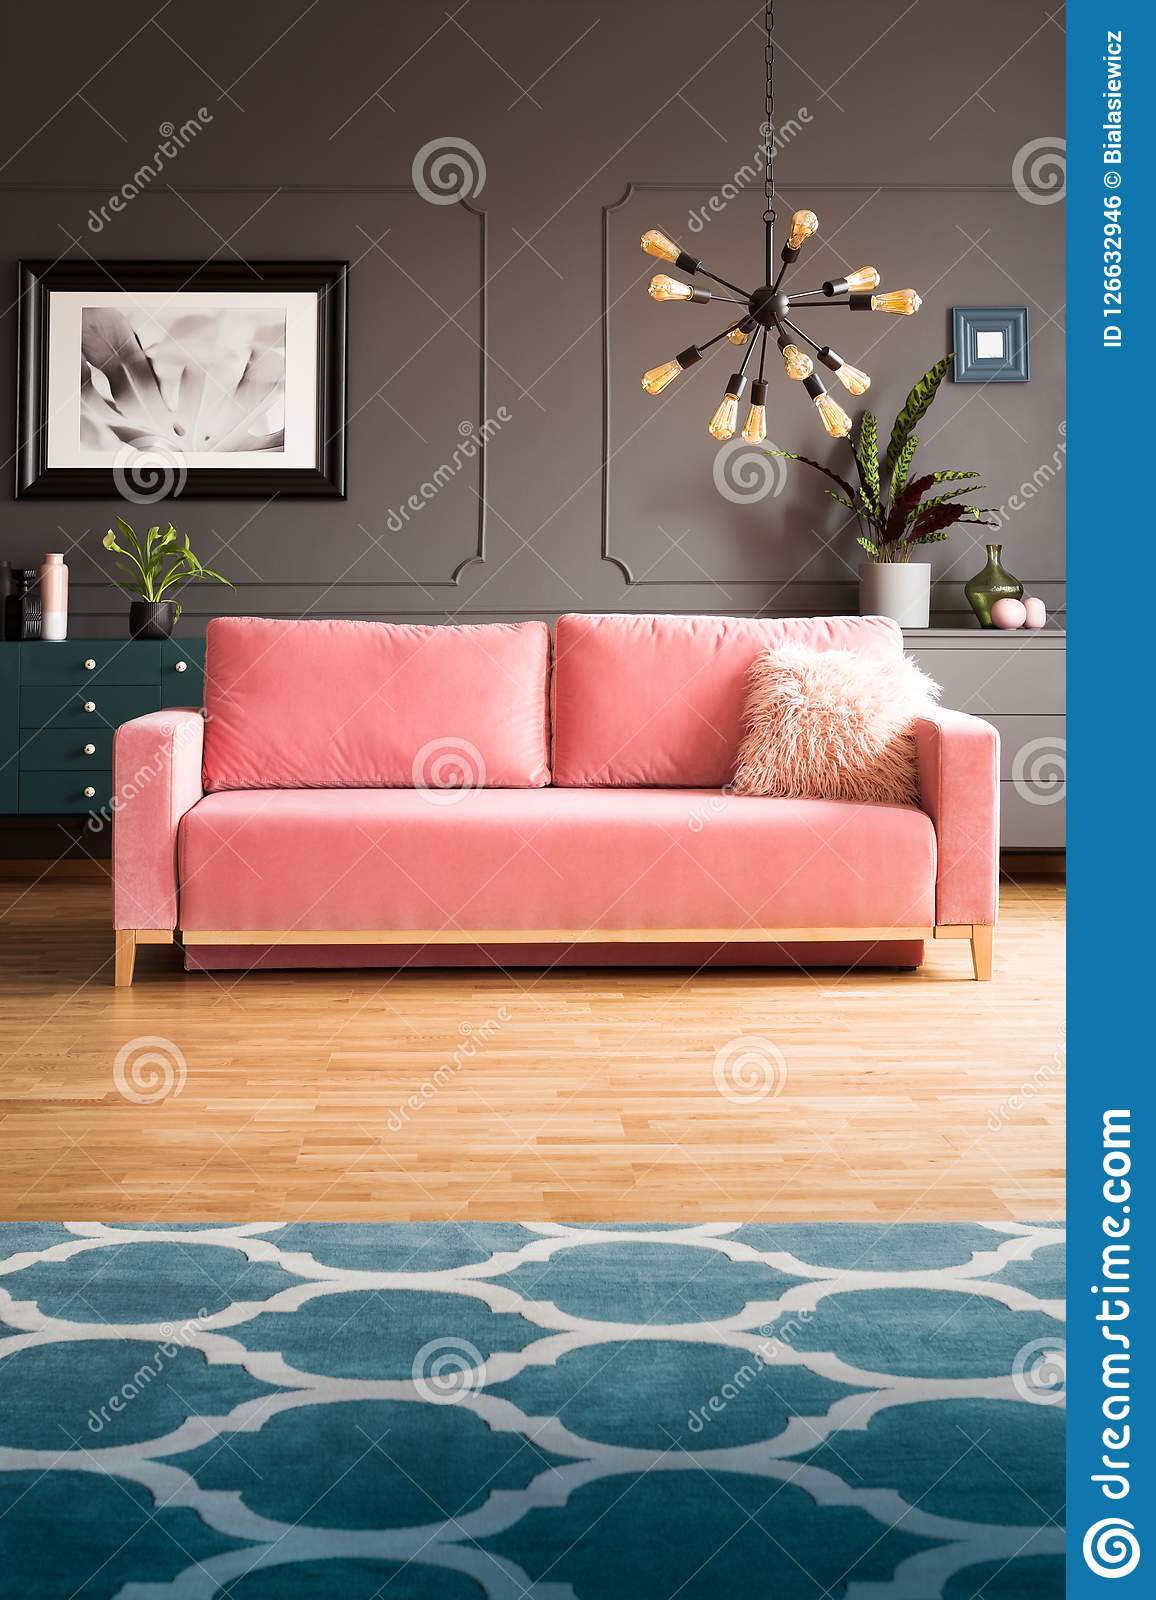 Real photo of powder pink sofa with fur cushion standing in dark